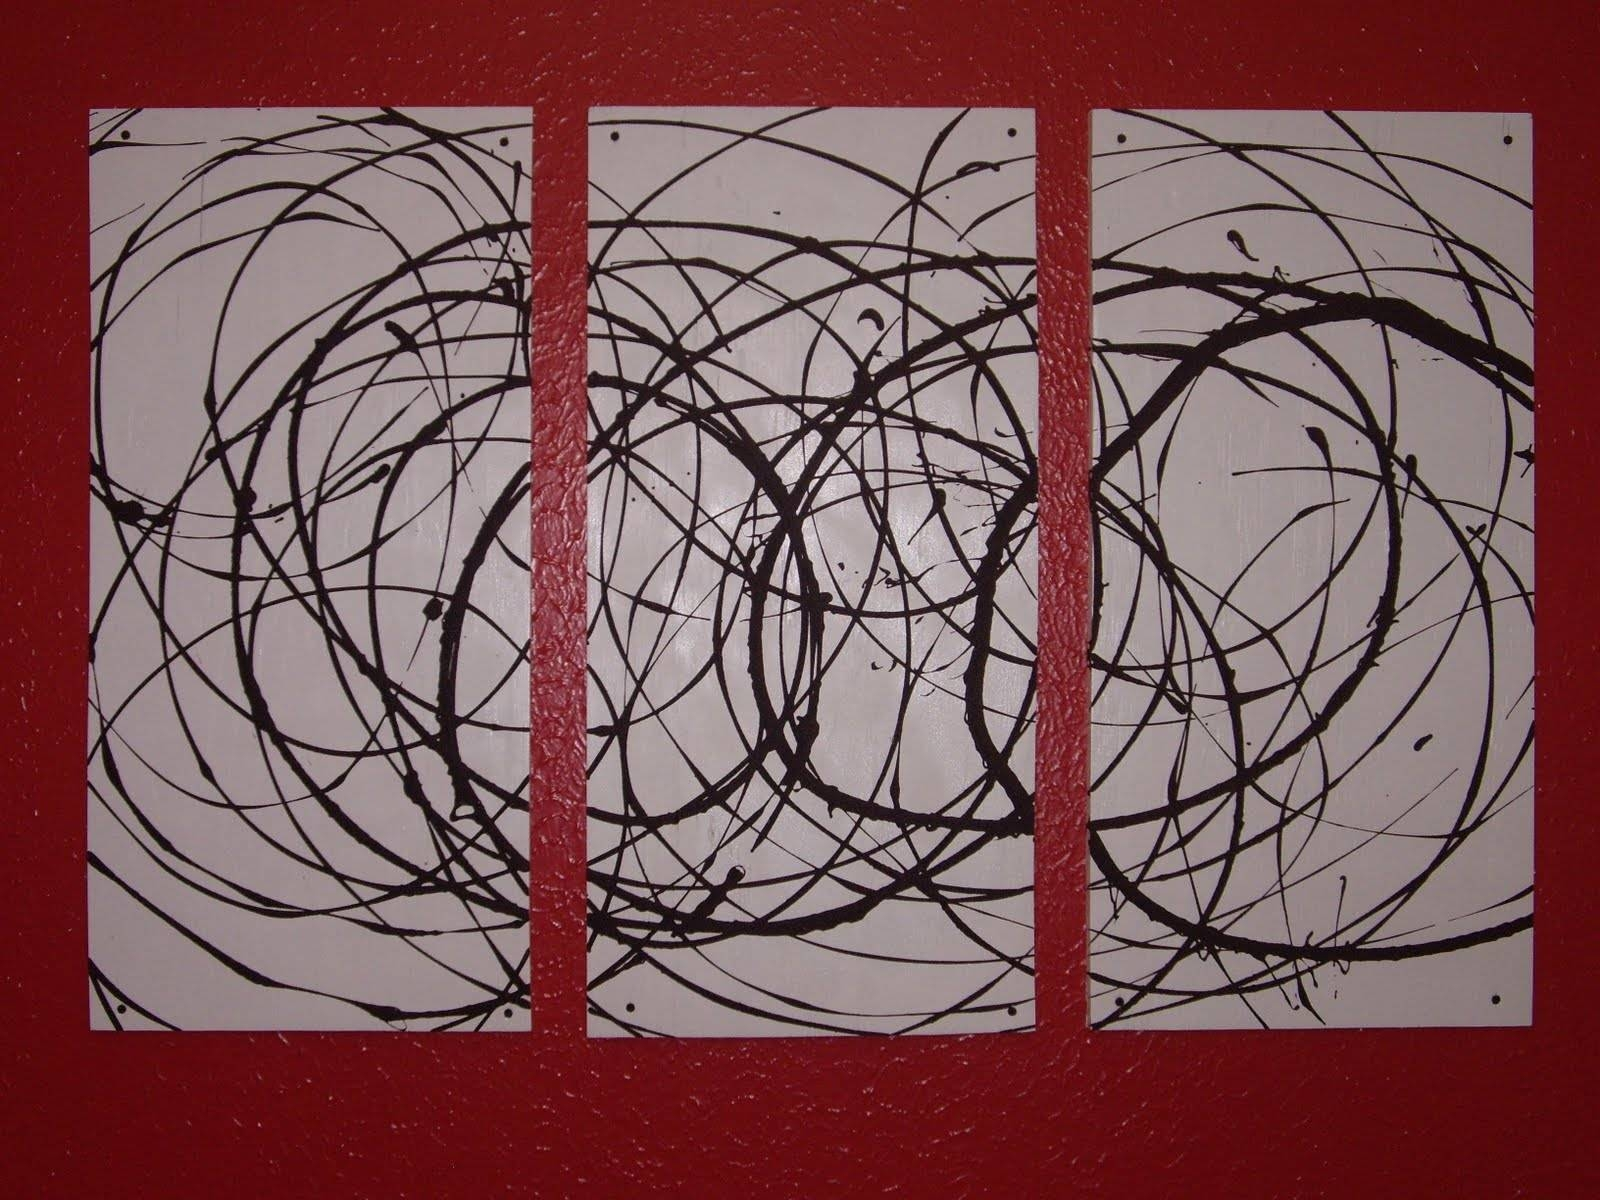 Art: Diy Metal Wall Art Intended For Current Sheet Metal Wall Art (View 2 of 20)